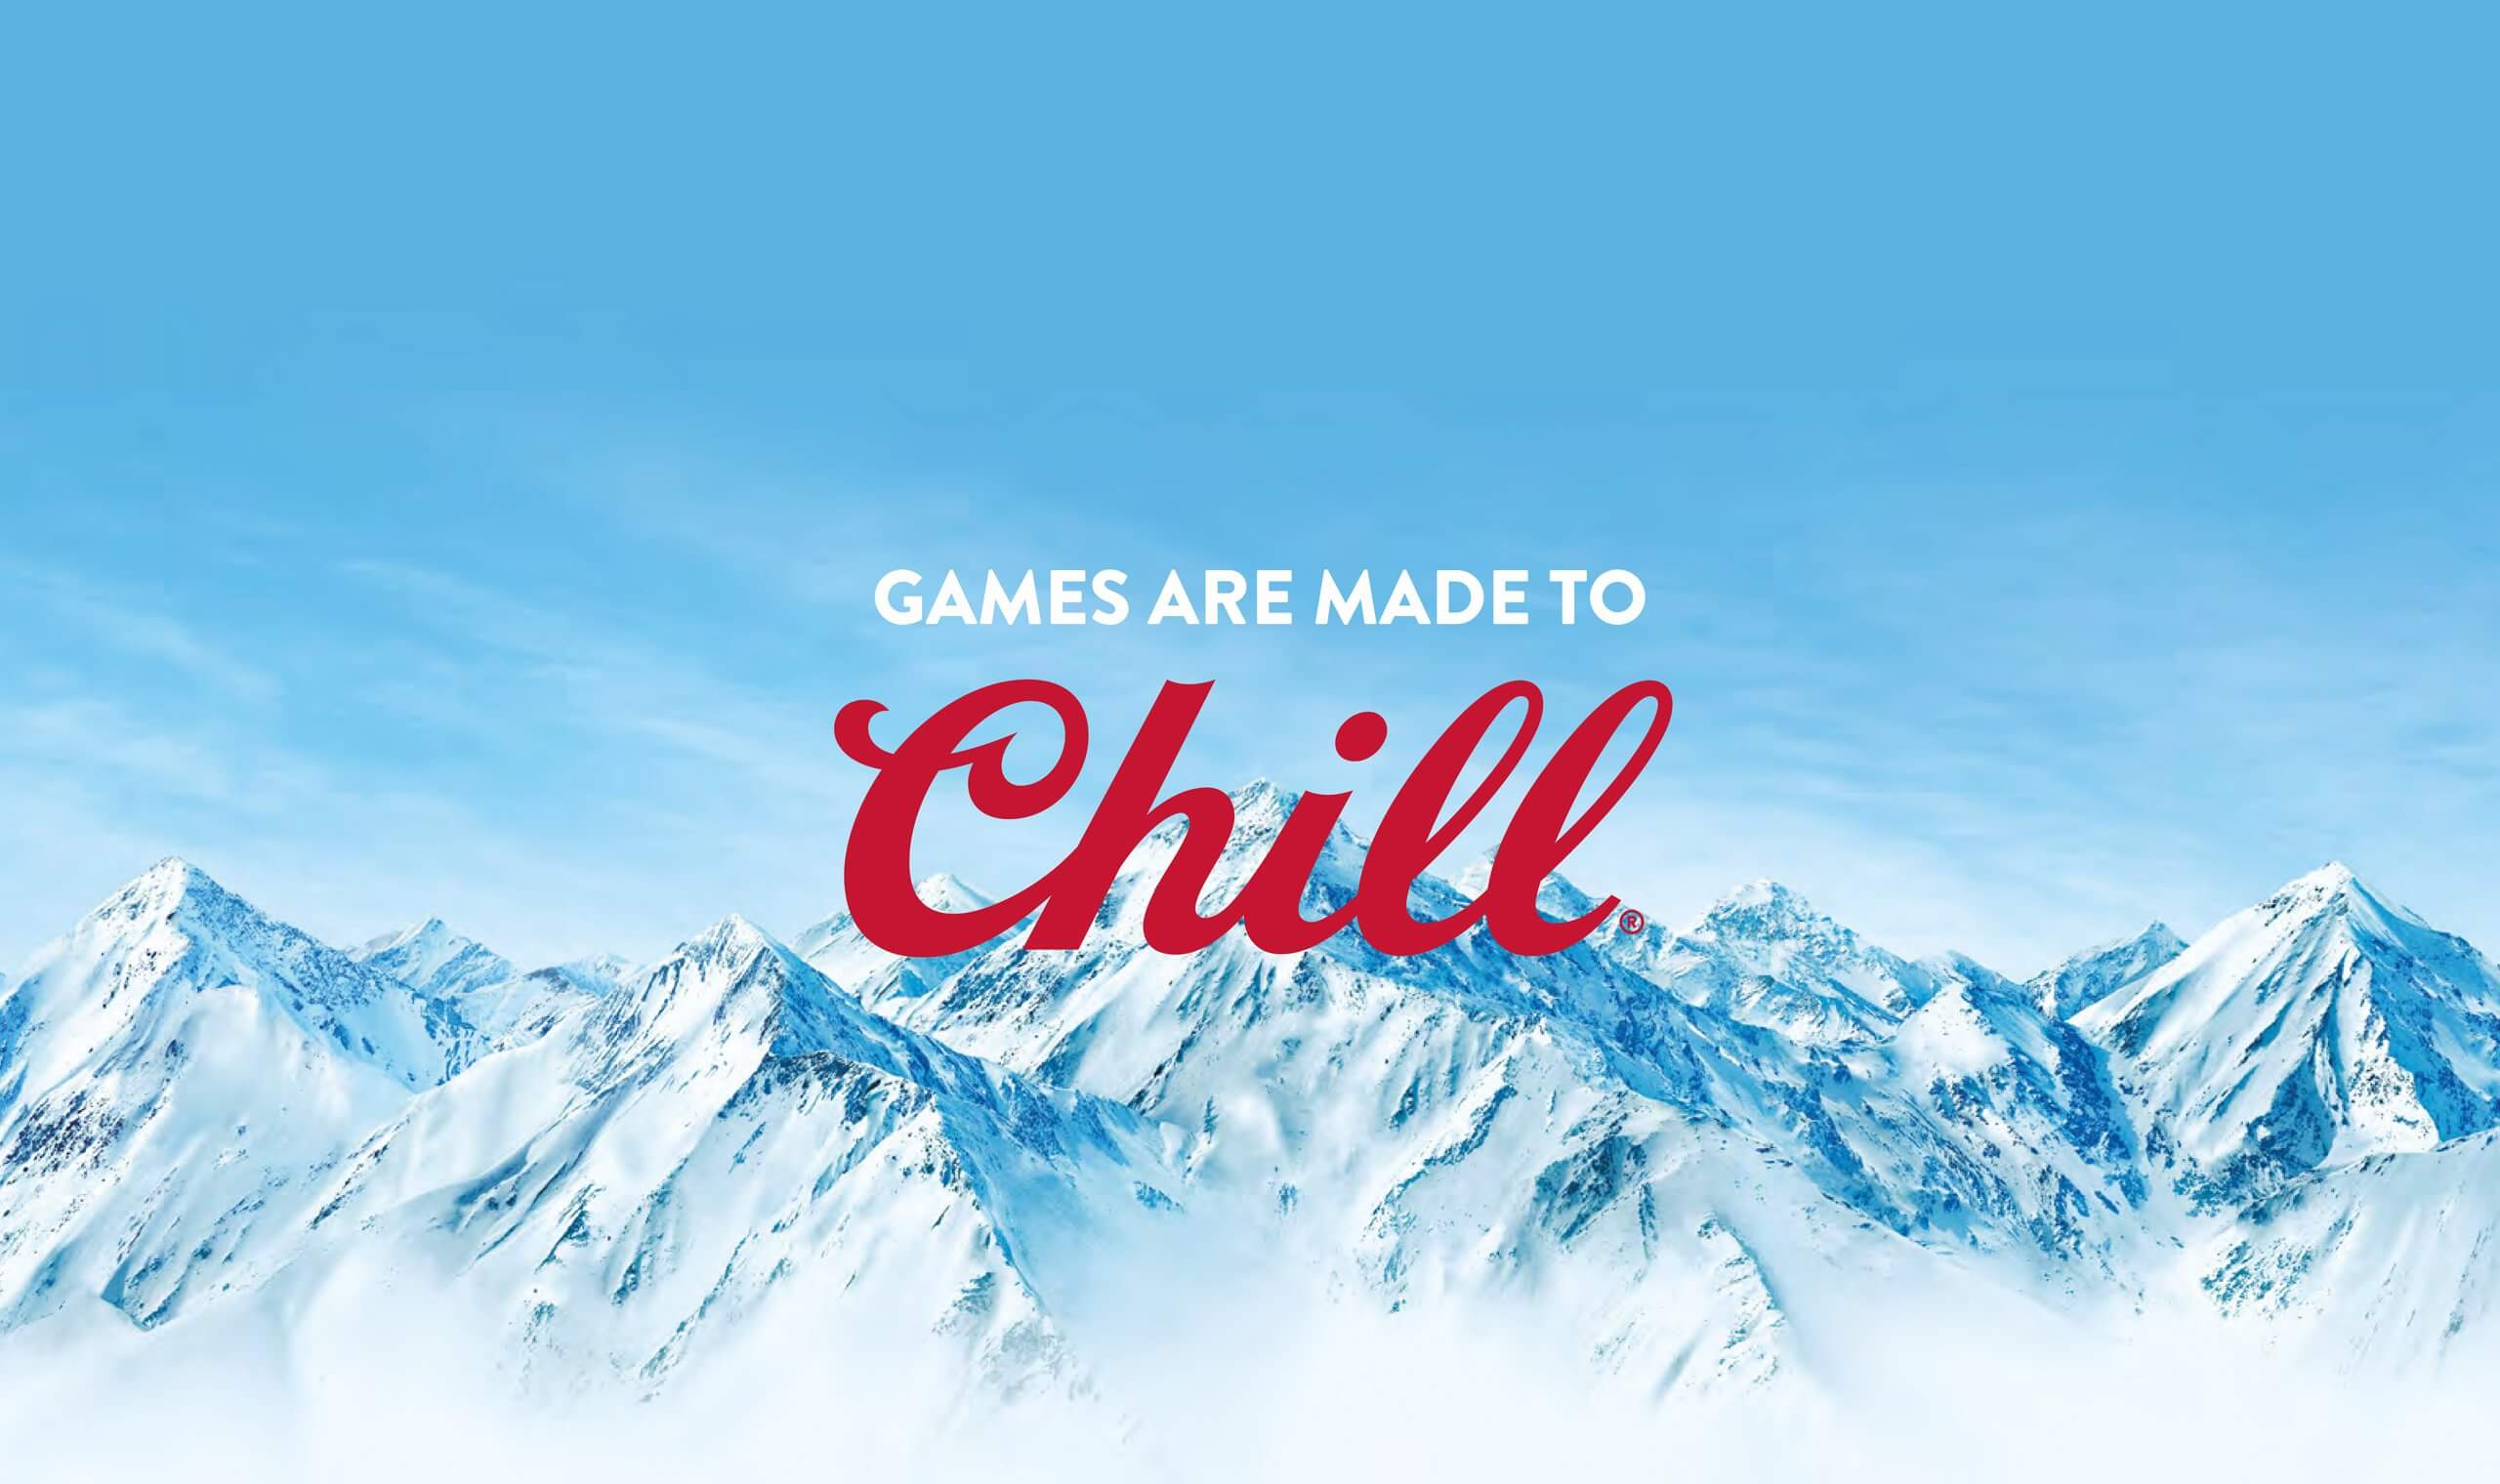 Games Are Made to Chill